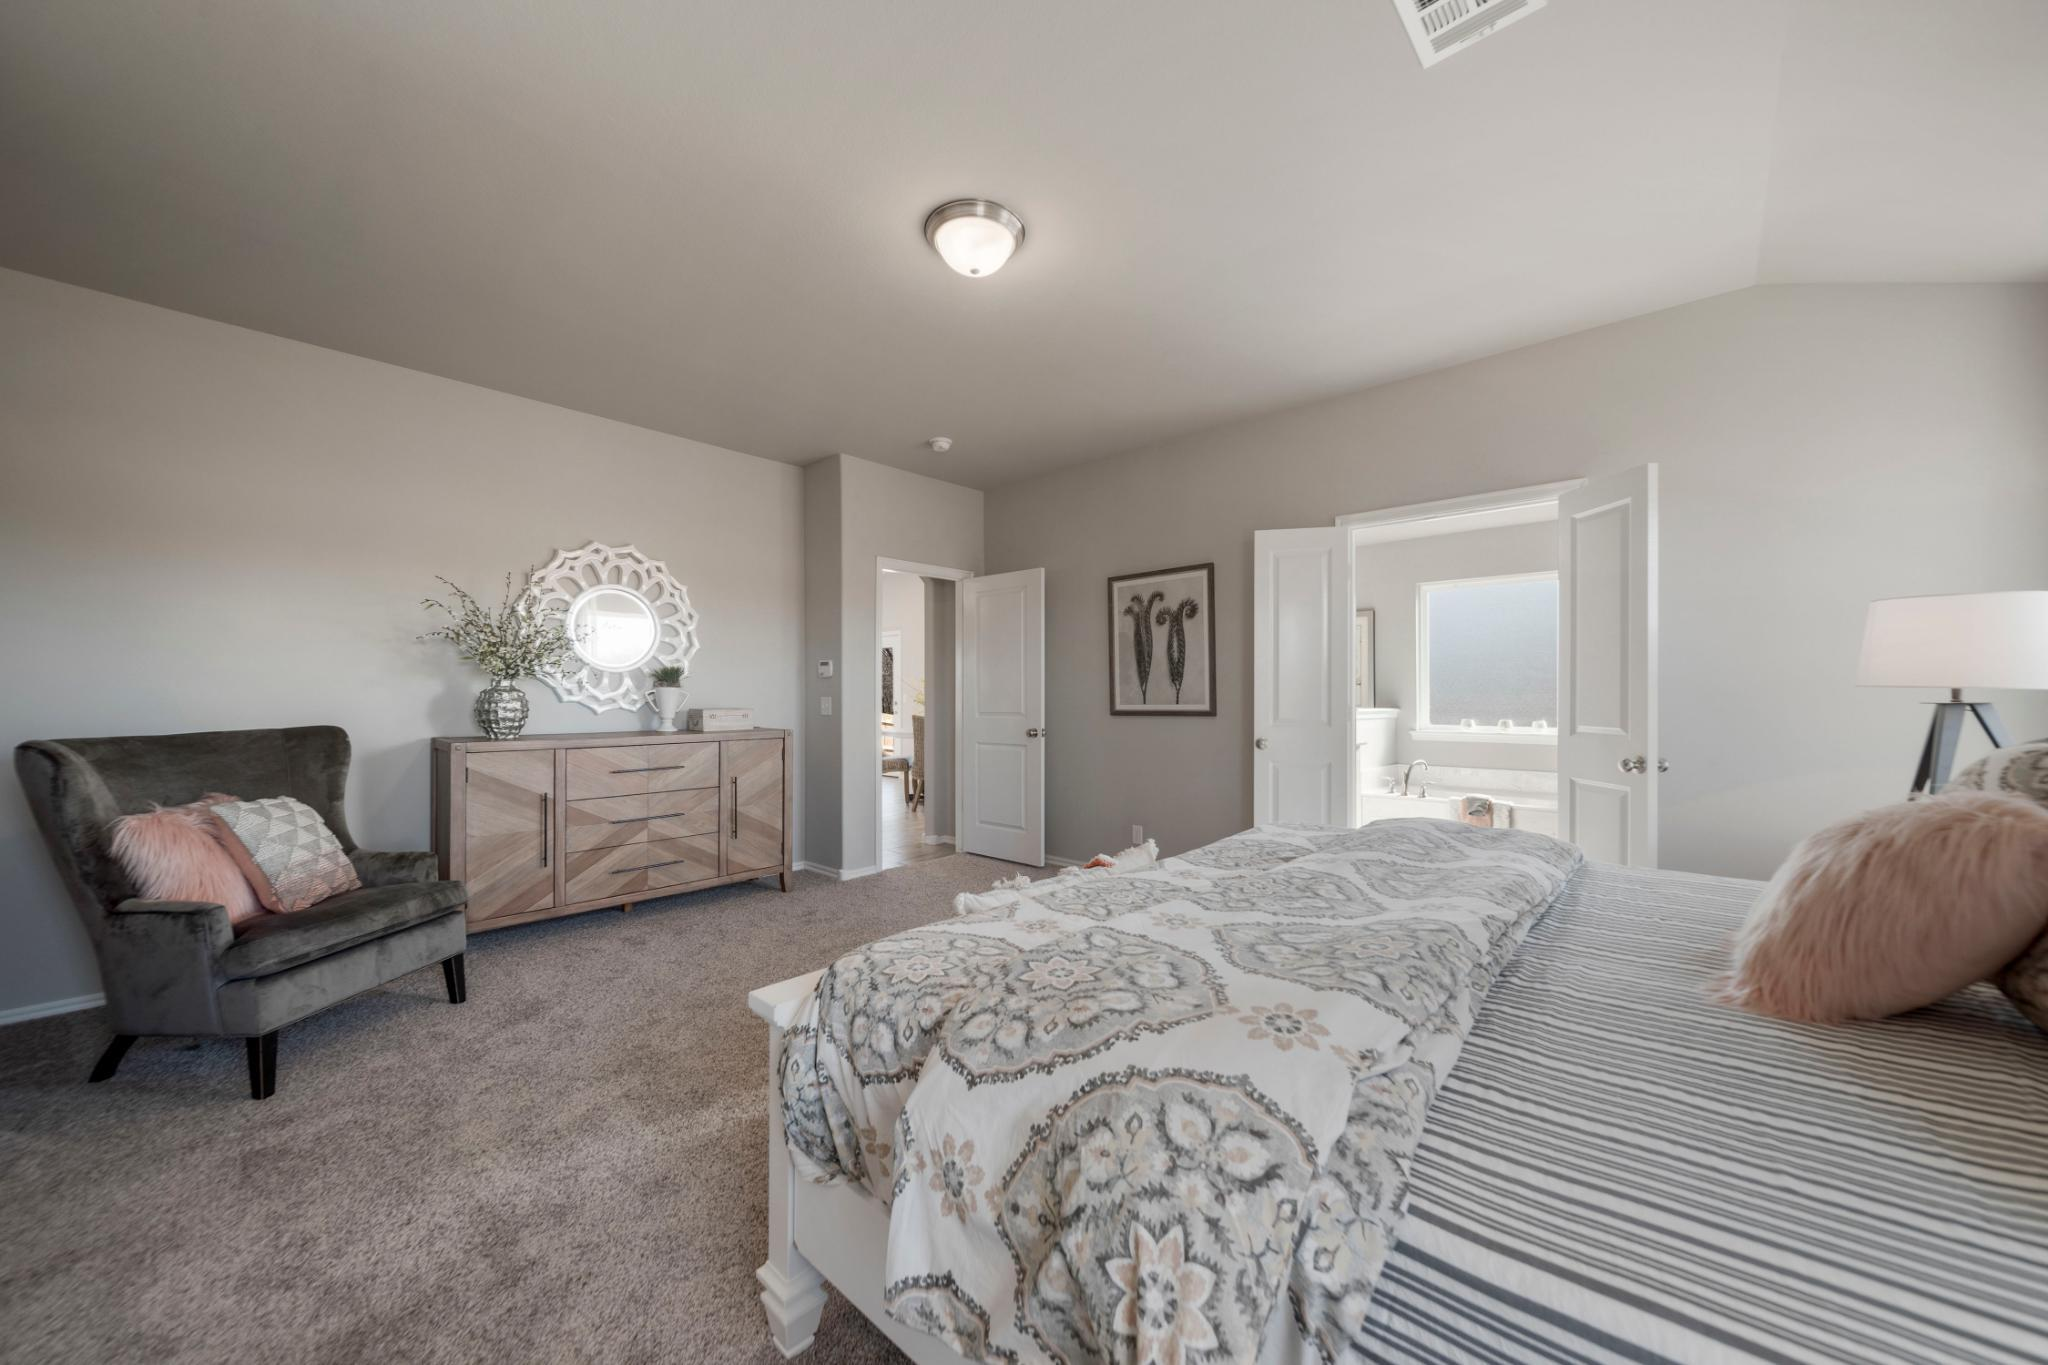 Bedroom featured in the Tahoe By Capital Homes in Tulsa, OK